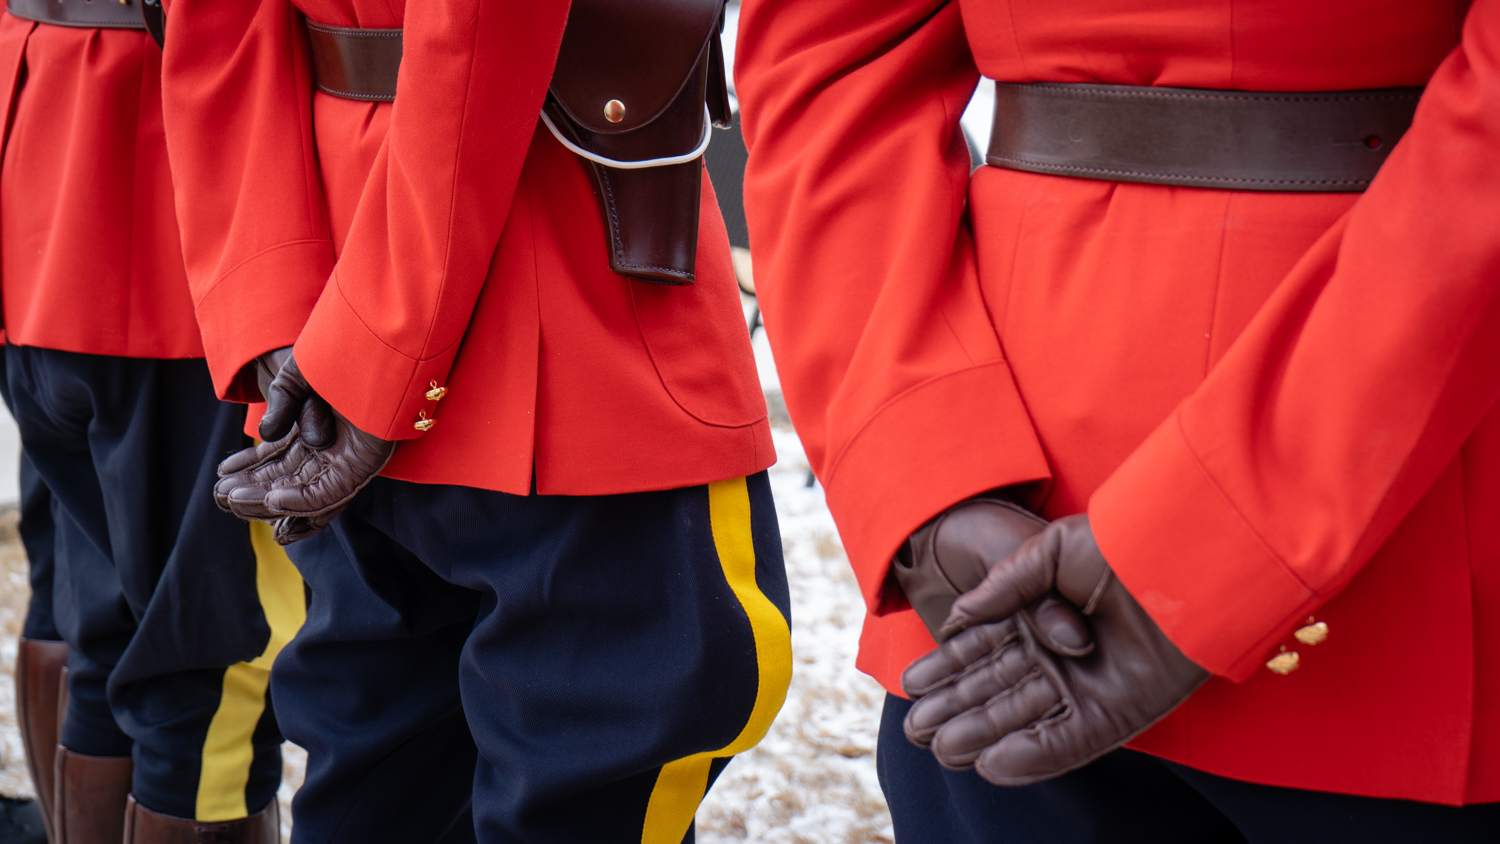 File photo of RCMP officers